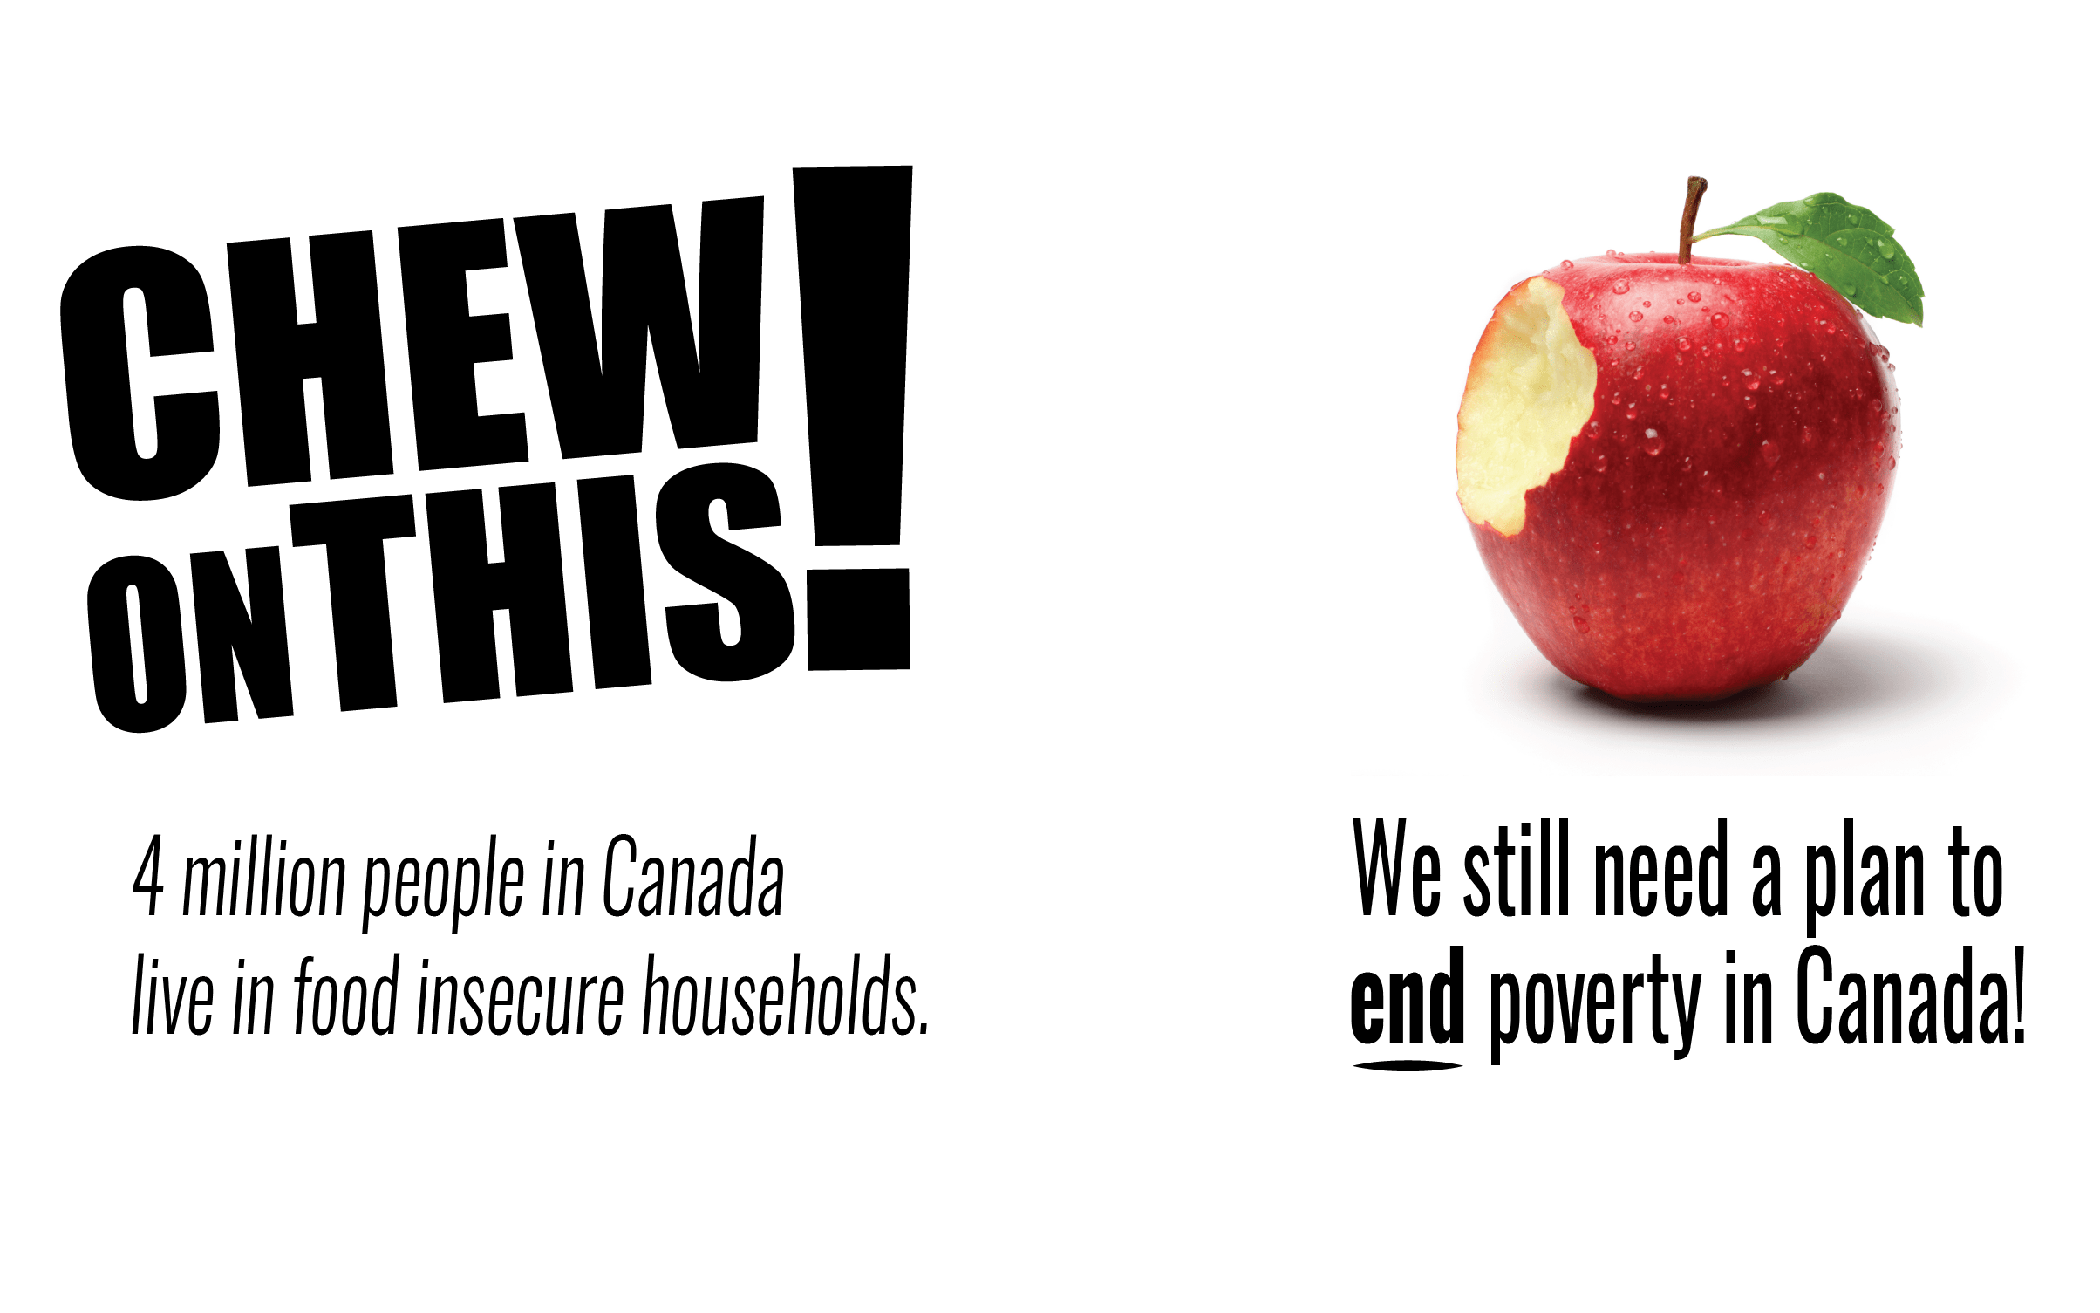 Statement from Canadian Leaders in the CRC Affirms Poverty Eradication Efforts